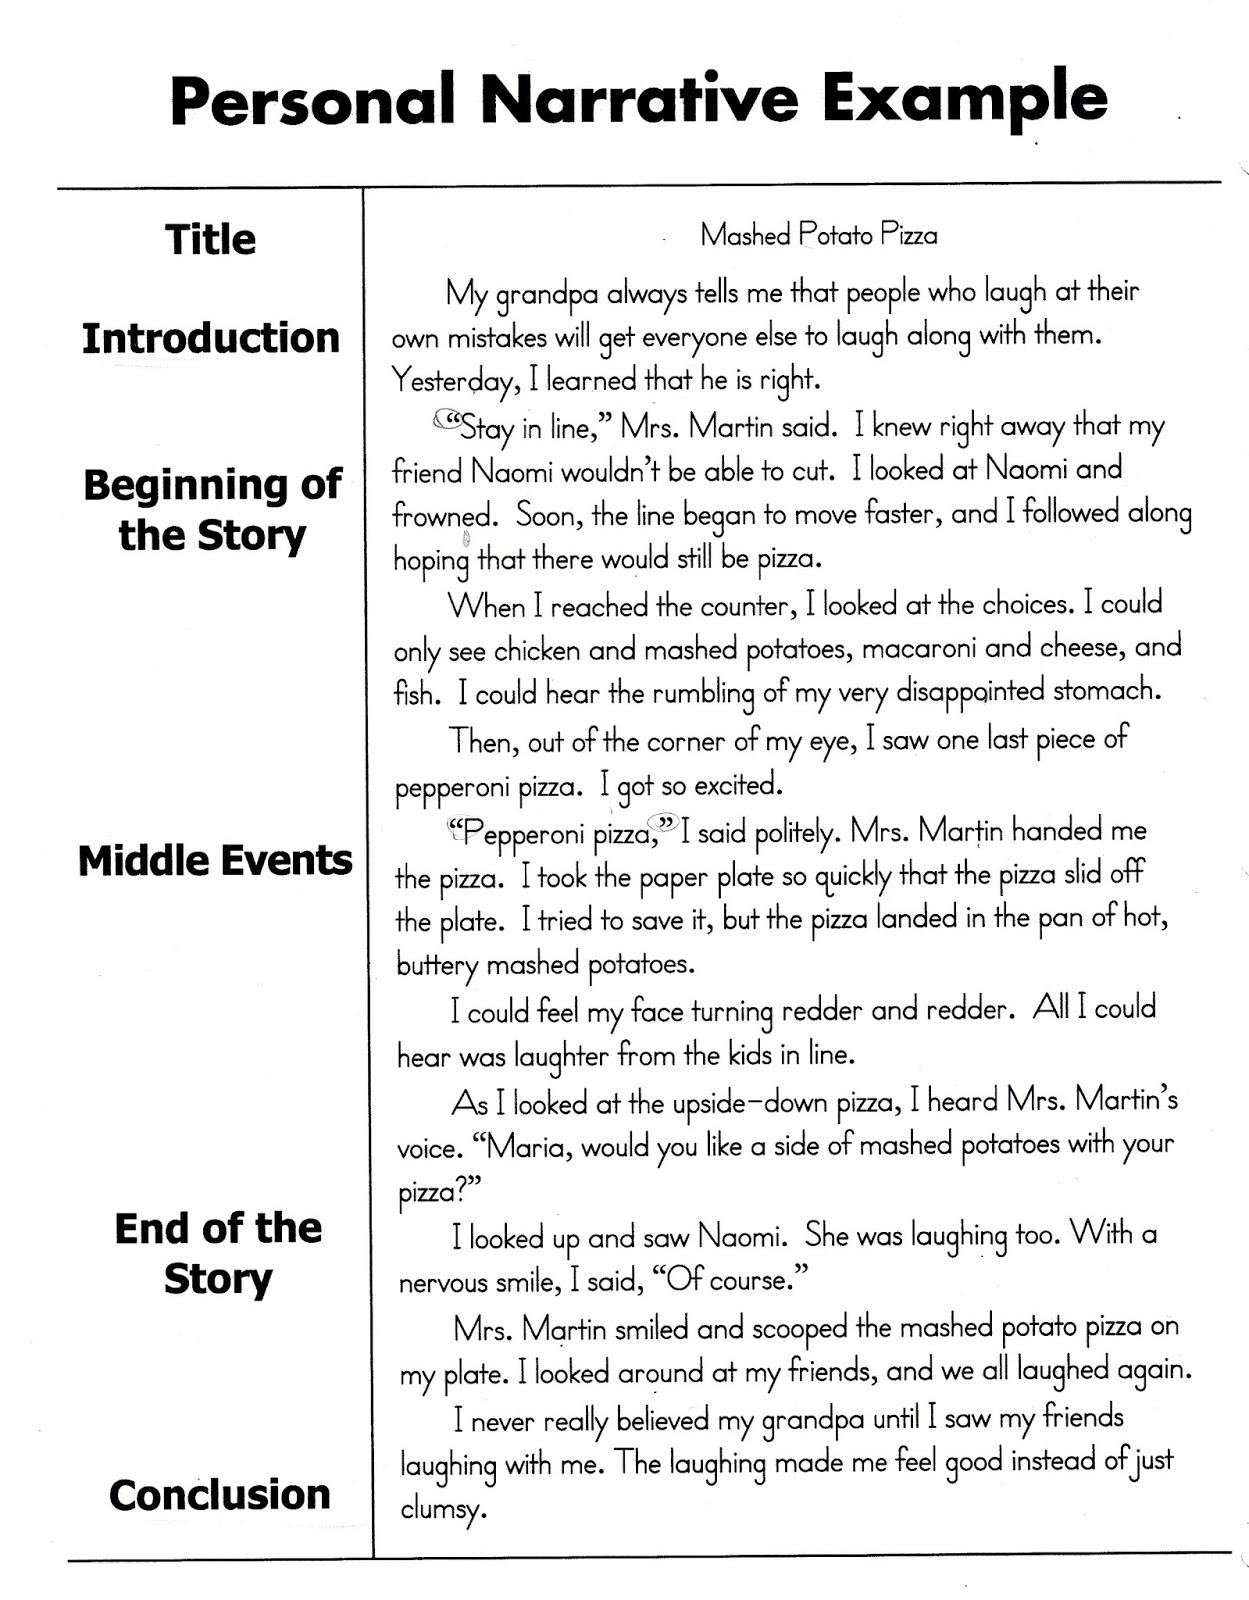 Personal Narrative Writing Examples